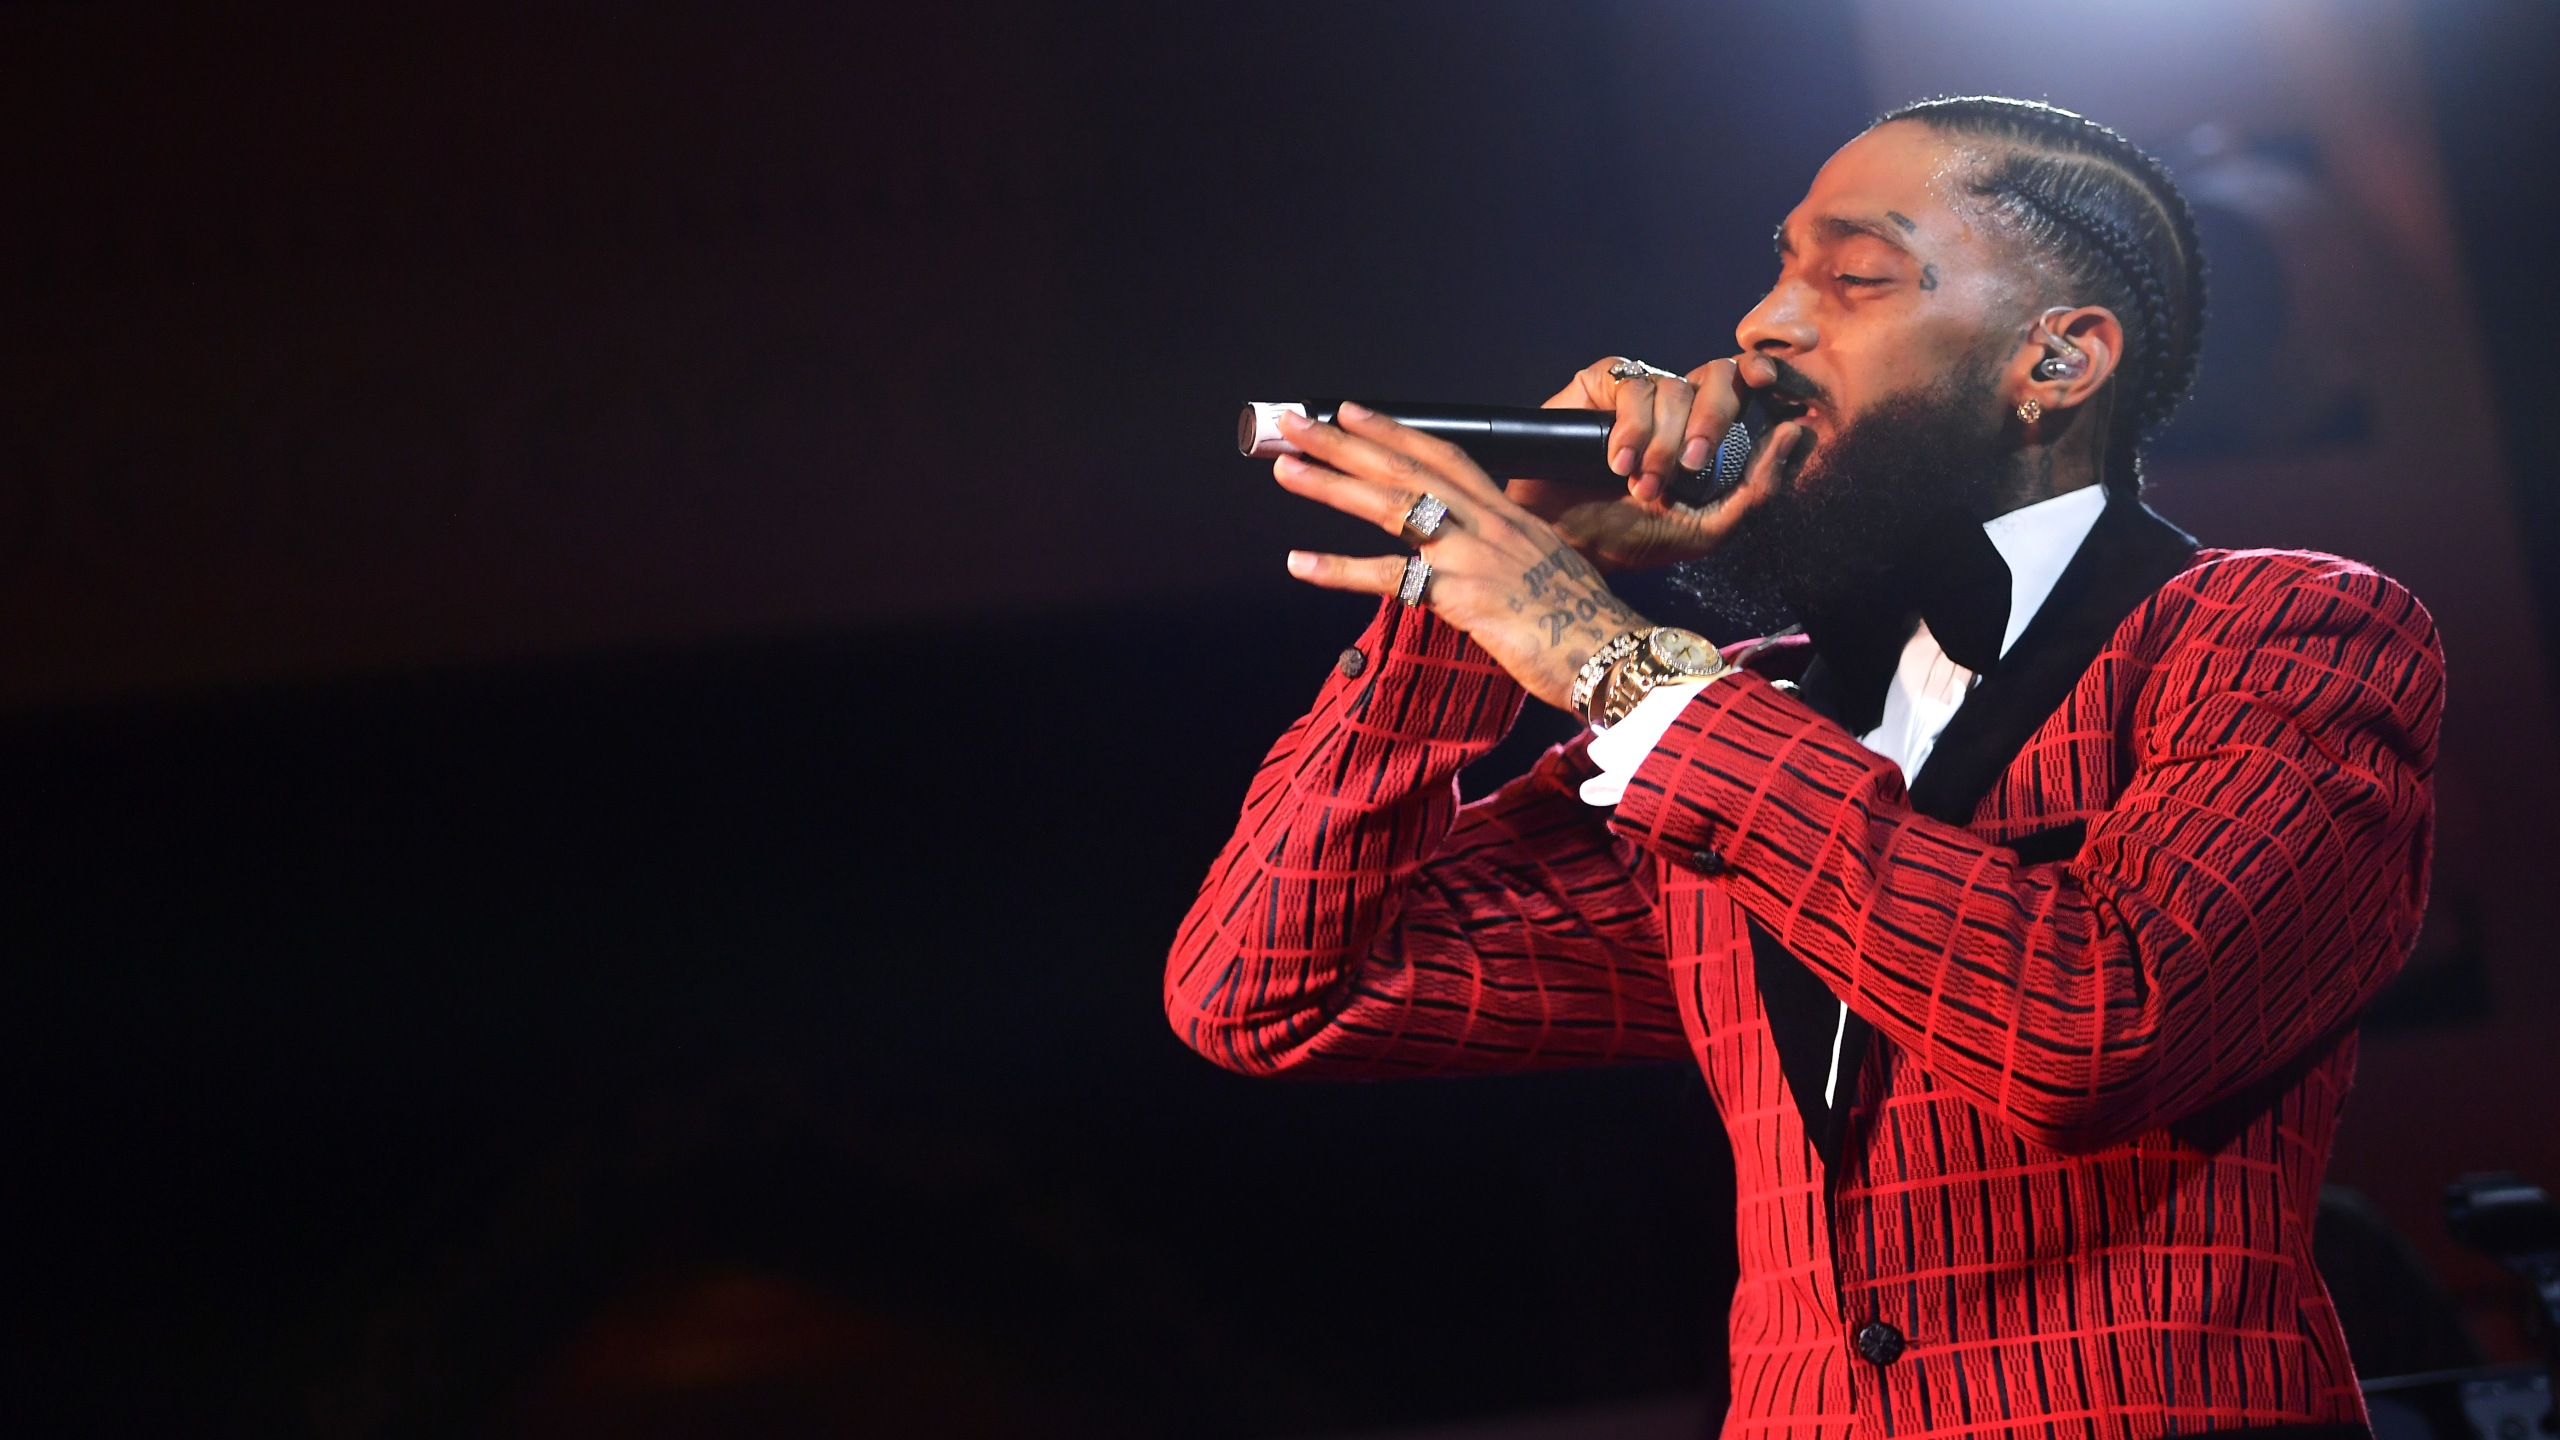 Nipsey Hussle performs onstage at the Warner Music Pre-Grammy Party at the NoMad Hotel on Feb. 7, 2019, in Los Angeles. (Credit: Matt Winkelmeyer/Getty Images for Warner Music)